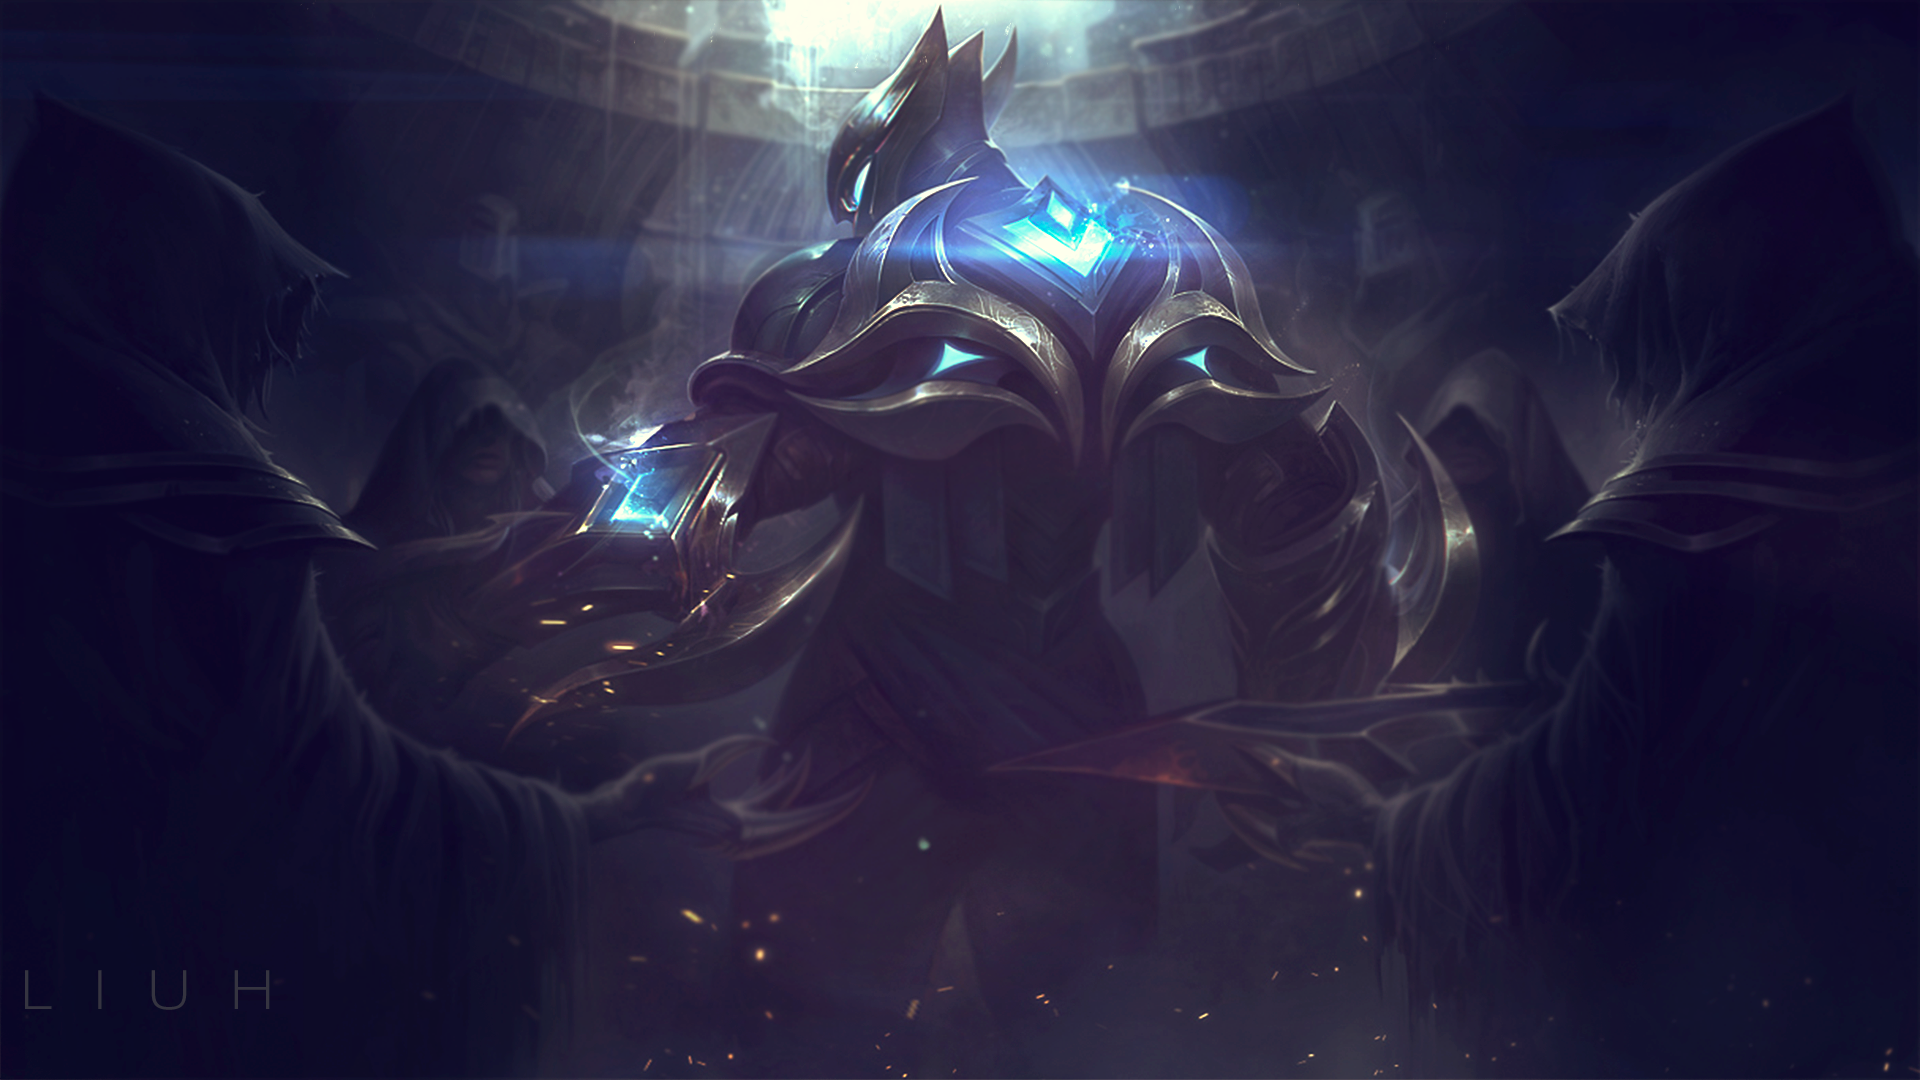 Championship Zed By KR Liuh